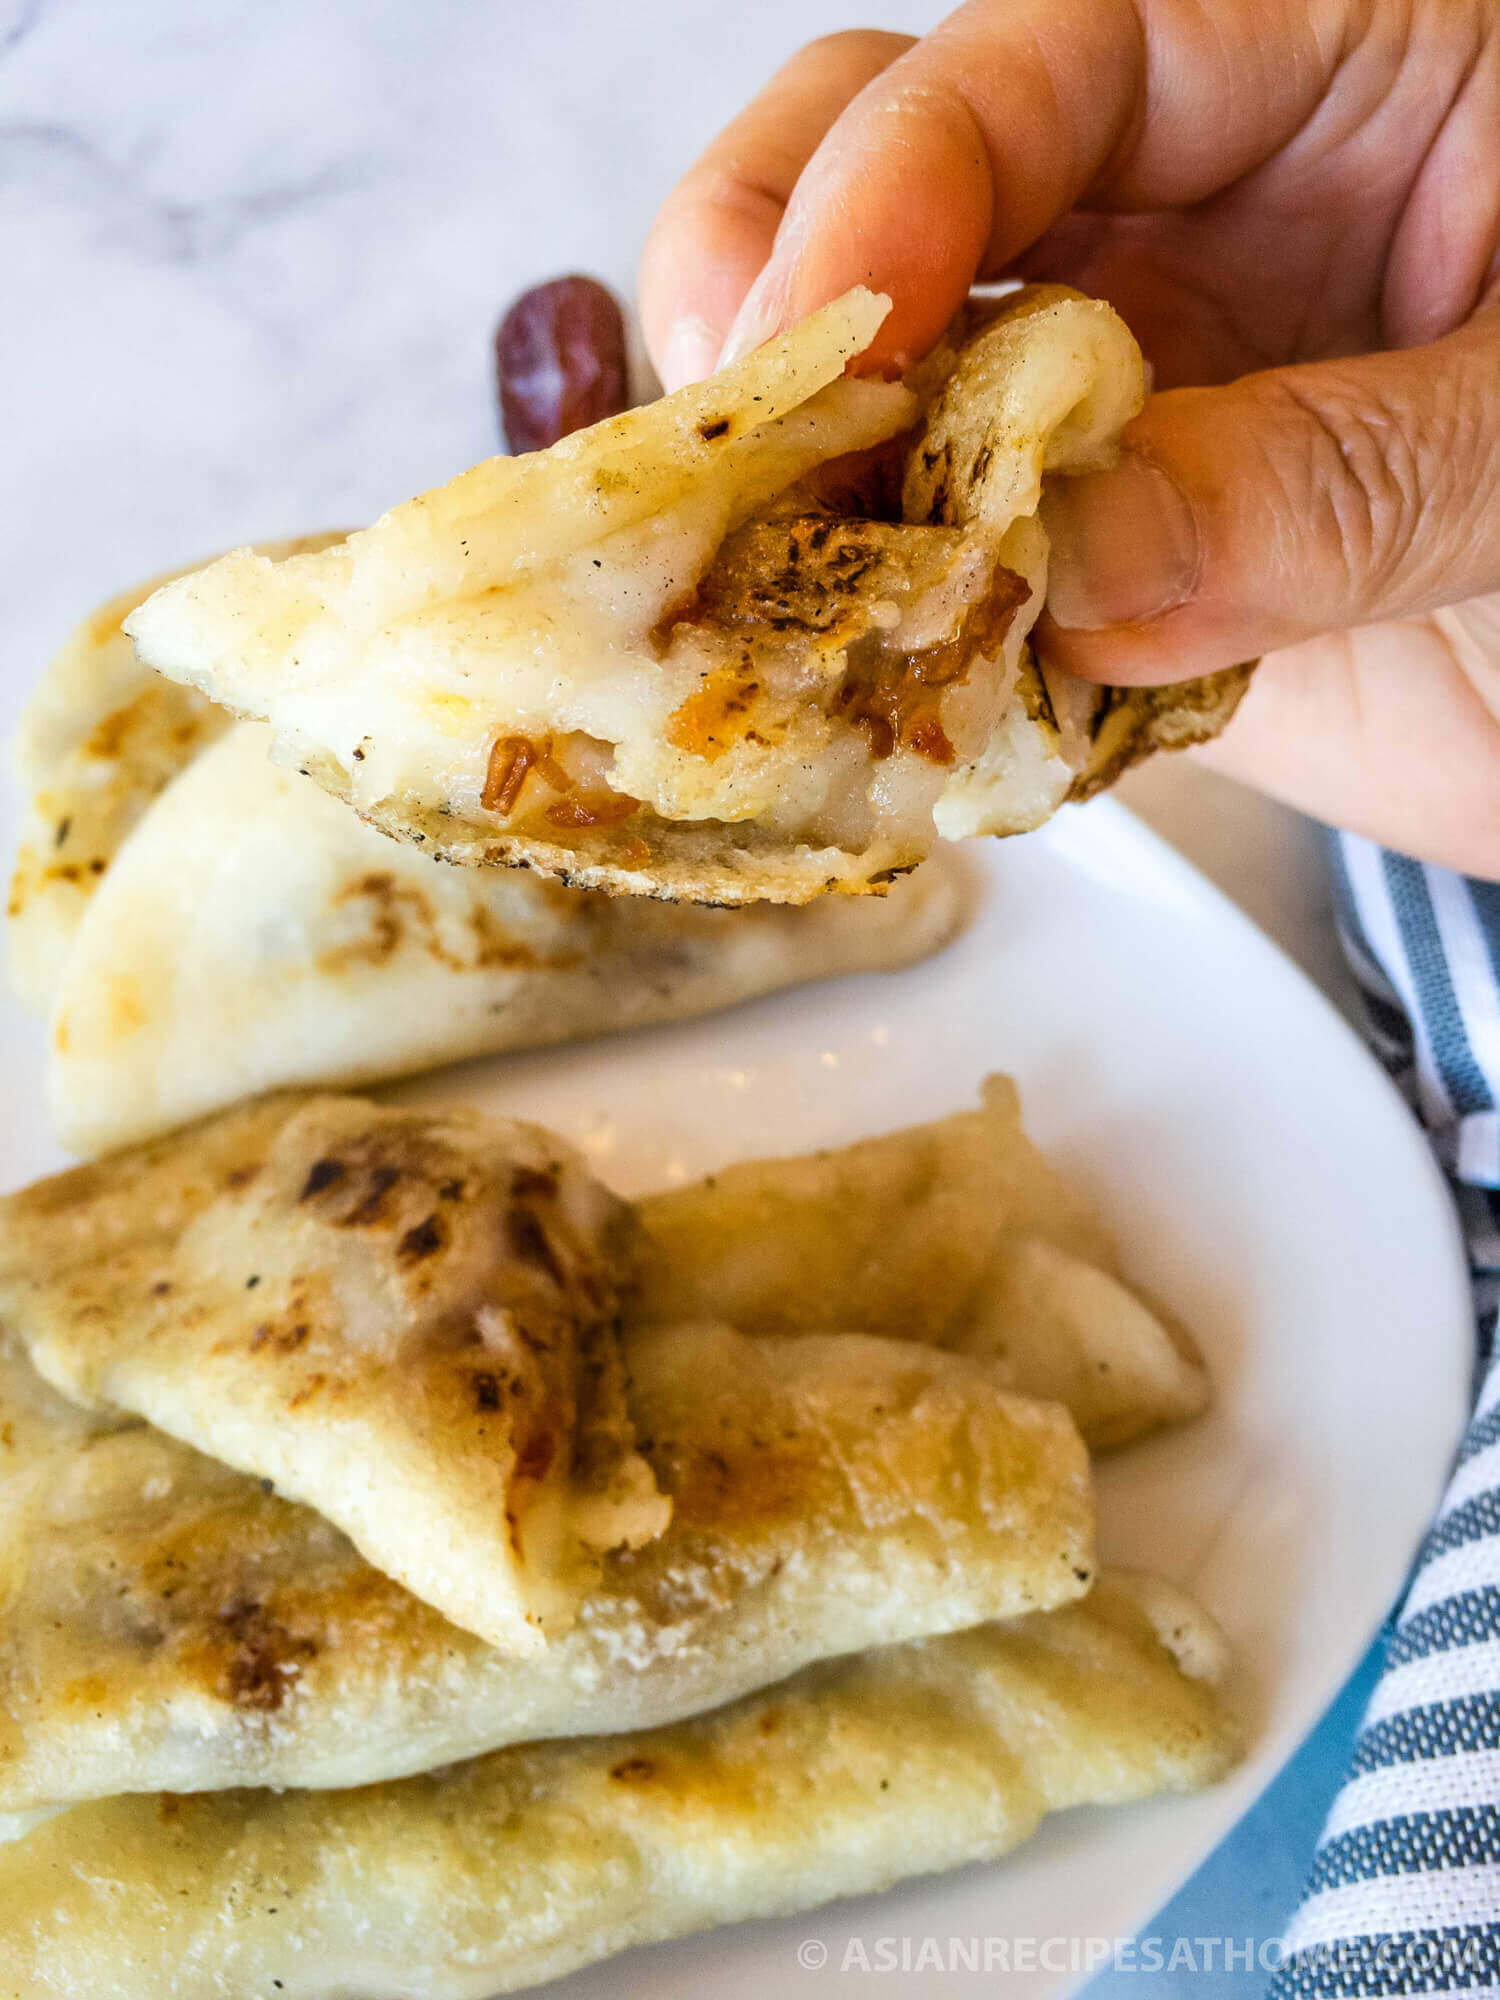 Sweet rice cakes with dates and honey is a delicious gluten-free dessert or snack.